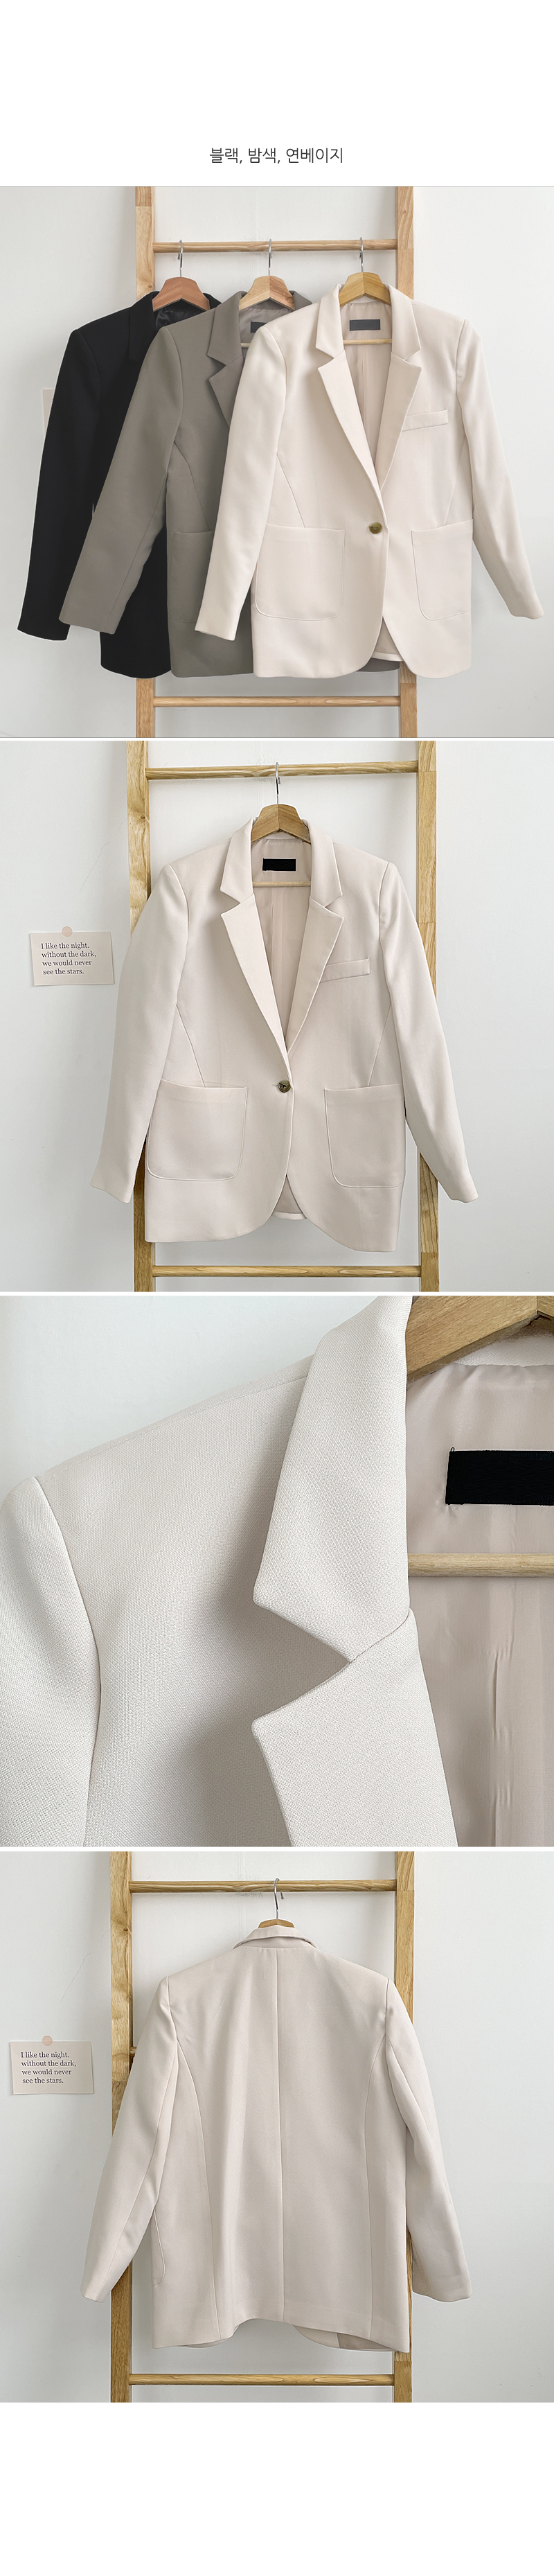 Simple classic jacket